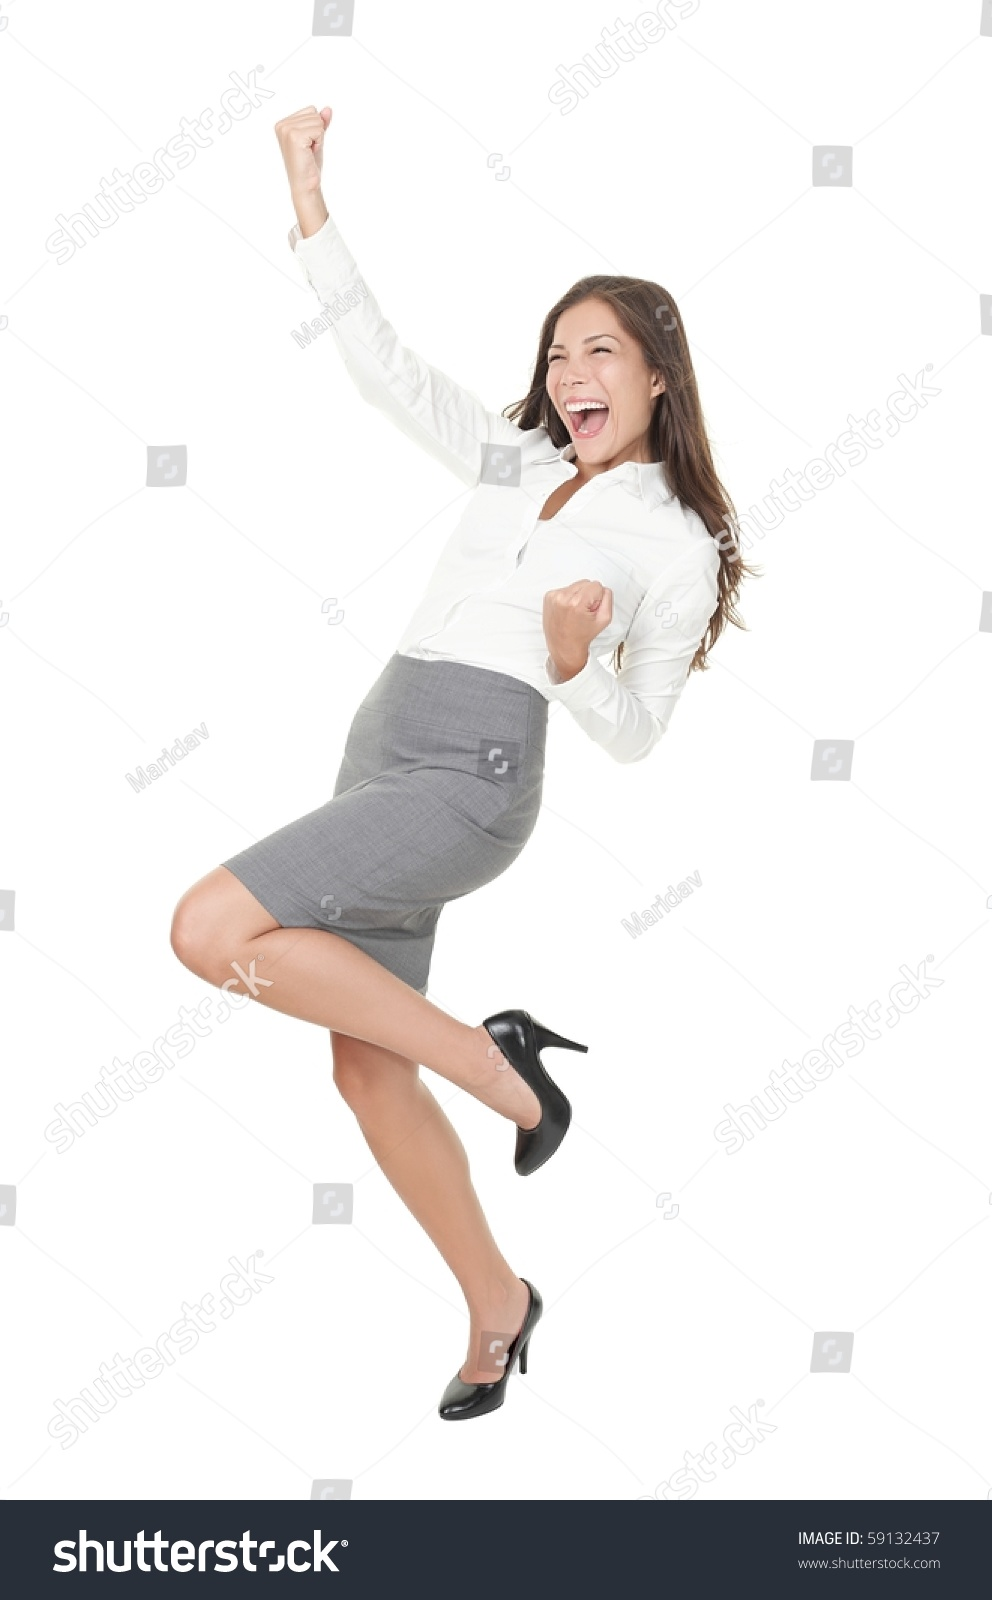 successful young business w happy her stock foto  successful young business w happy for her success isolated full body image on white background